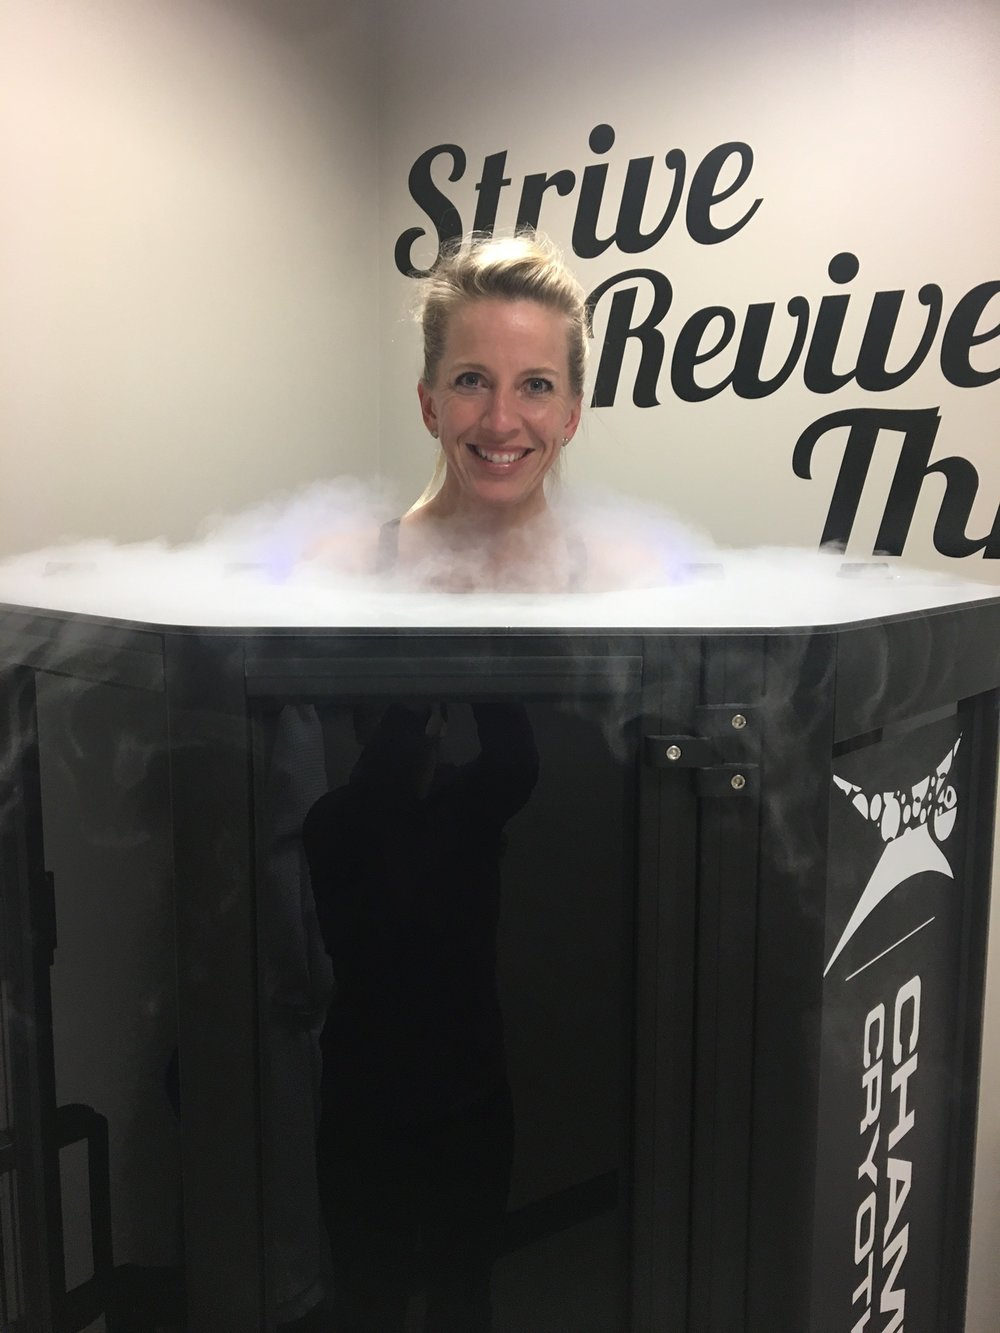 Whole body cryotherapy at Austin's leading cryo spa. Restore tired muscles  and recover from back and joint pain using the proven healing therapy of cold temperatures. Offering whole body cryotherapy, cold laser therapy, sport massage therapy, Normatec compression, and more.